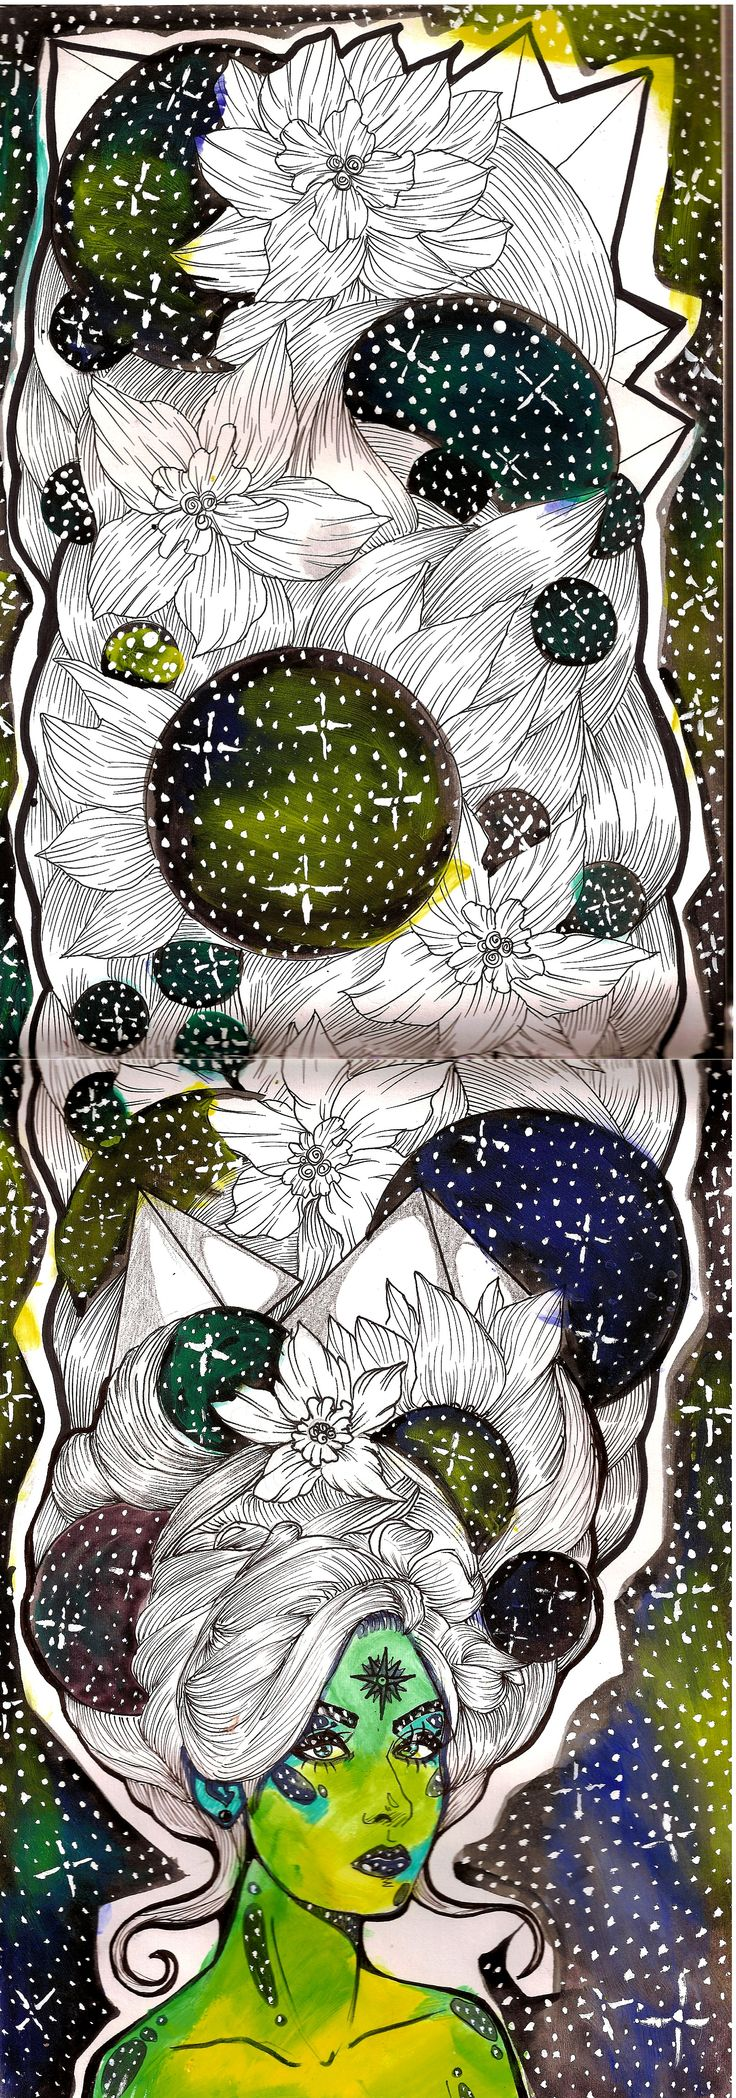 Cosmos ink and markers on paper